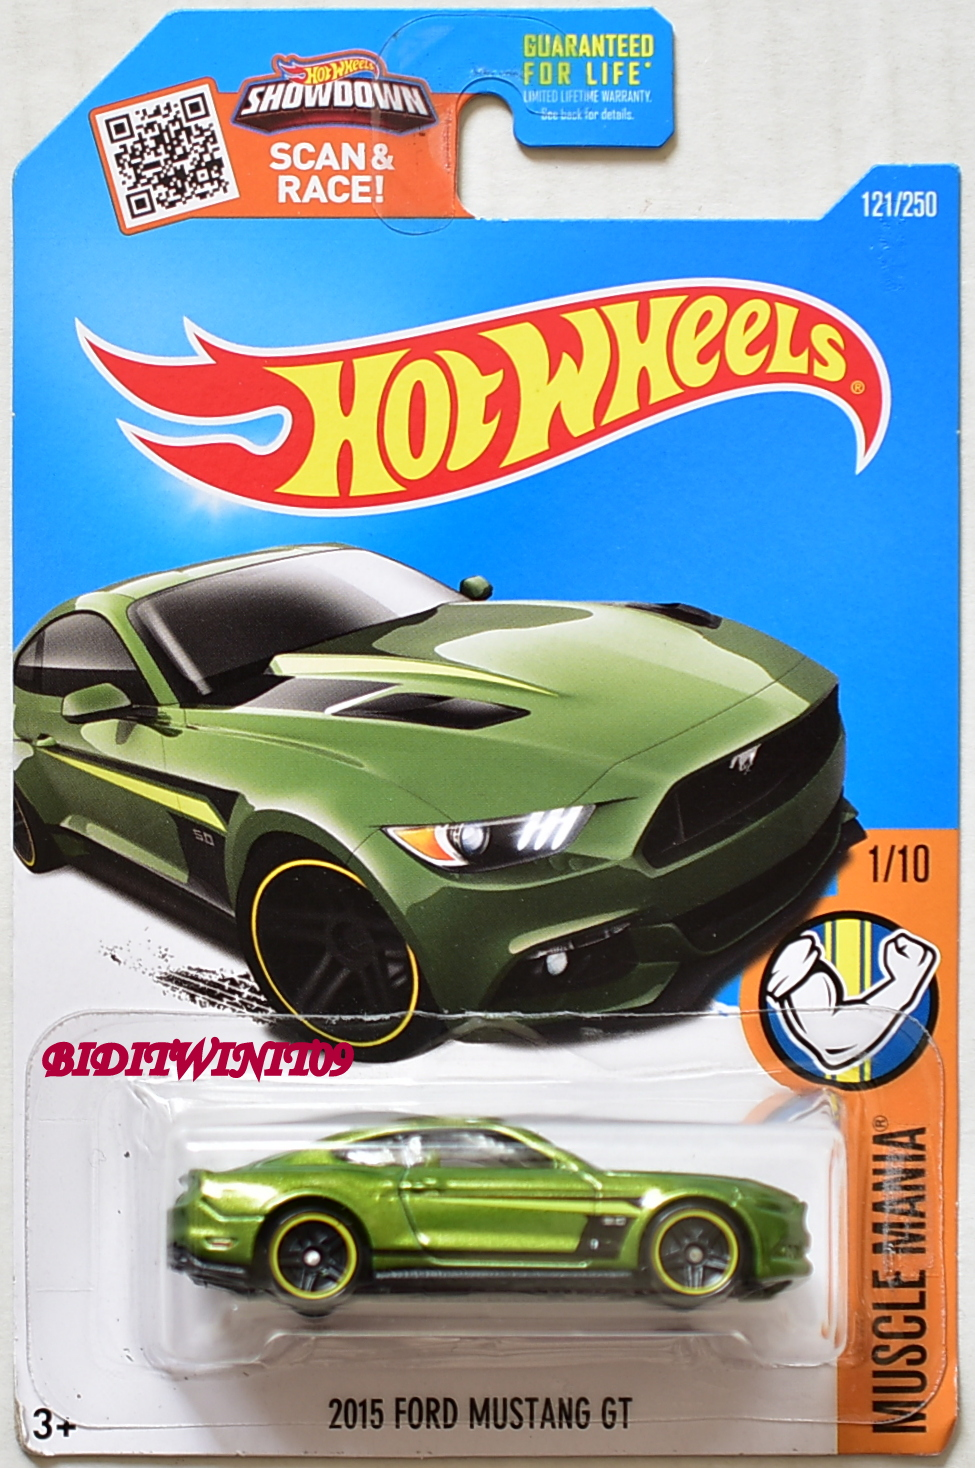 Hot Wheels Toys R Us Exclusive 2015 Ford Mustang Gt 1 10 Green